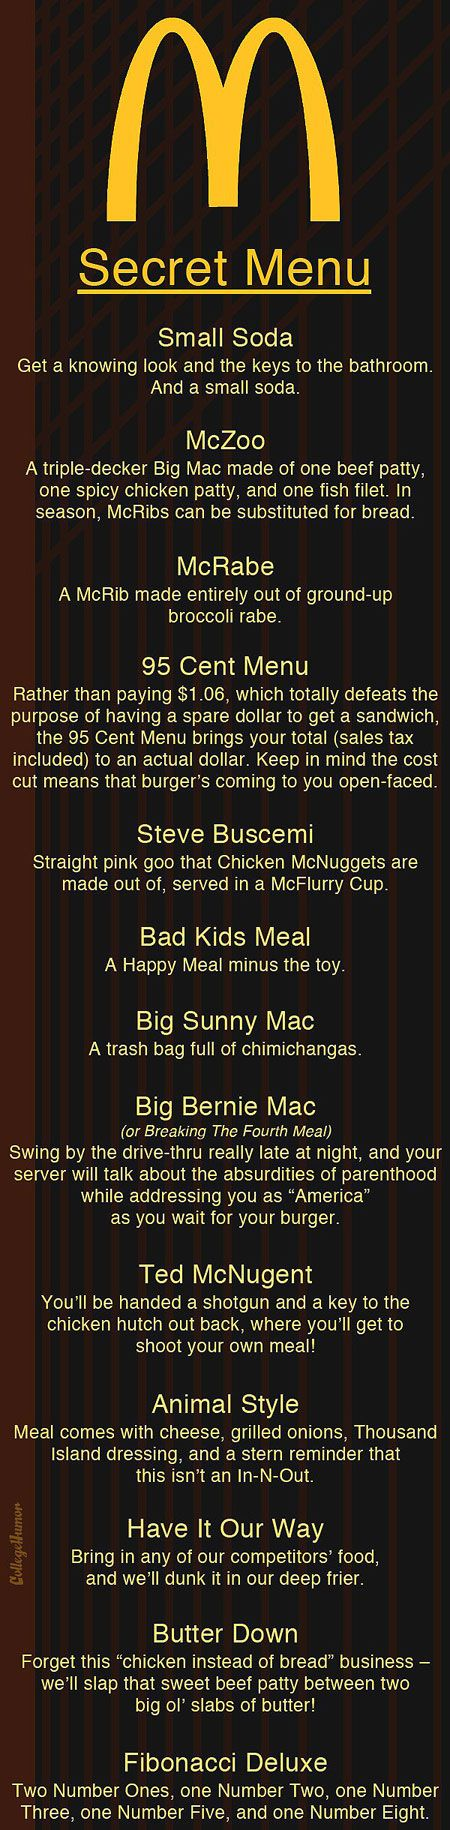 McDonald's Secret menu....